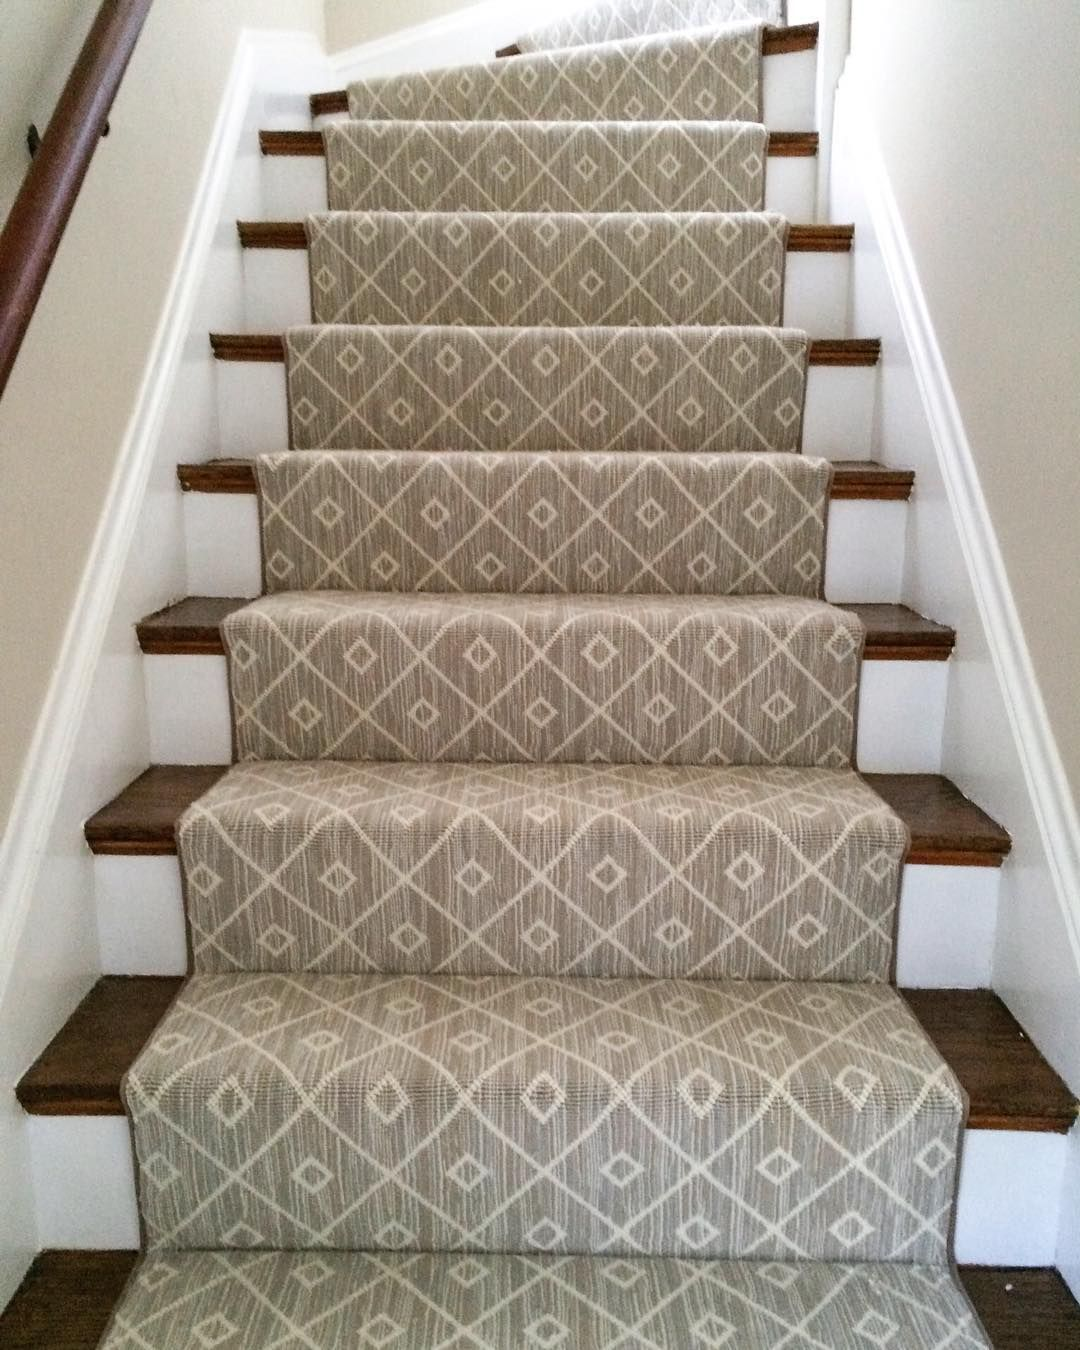 Mia A Woven 100 Wool Carpet Makes For A Beautiful Stair Runner Installation By Thecarp Patterned Stair Carpet Staircase Carpet Runner Stair Runner Carpet